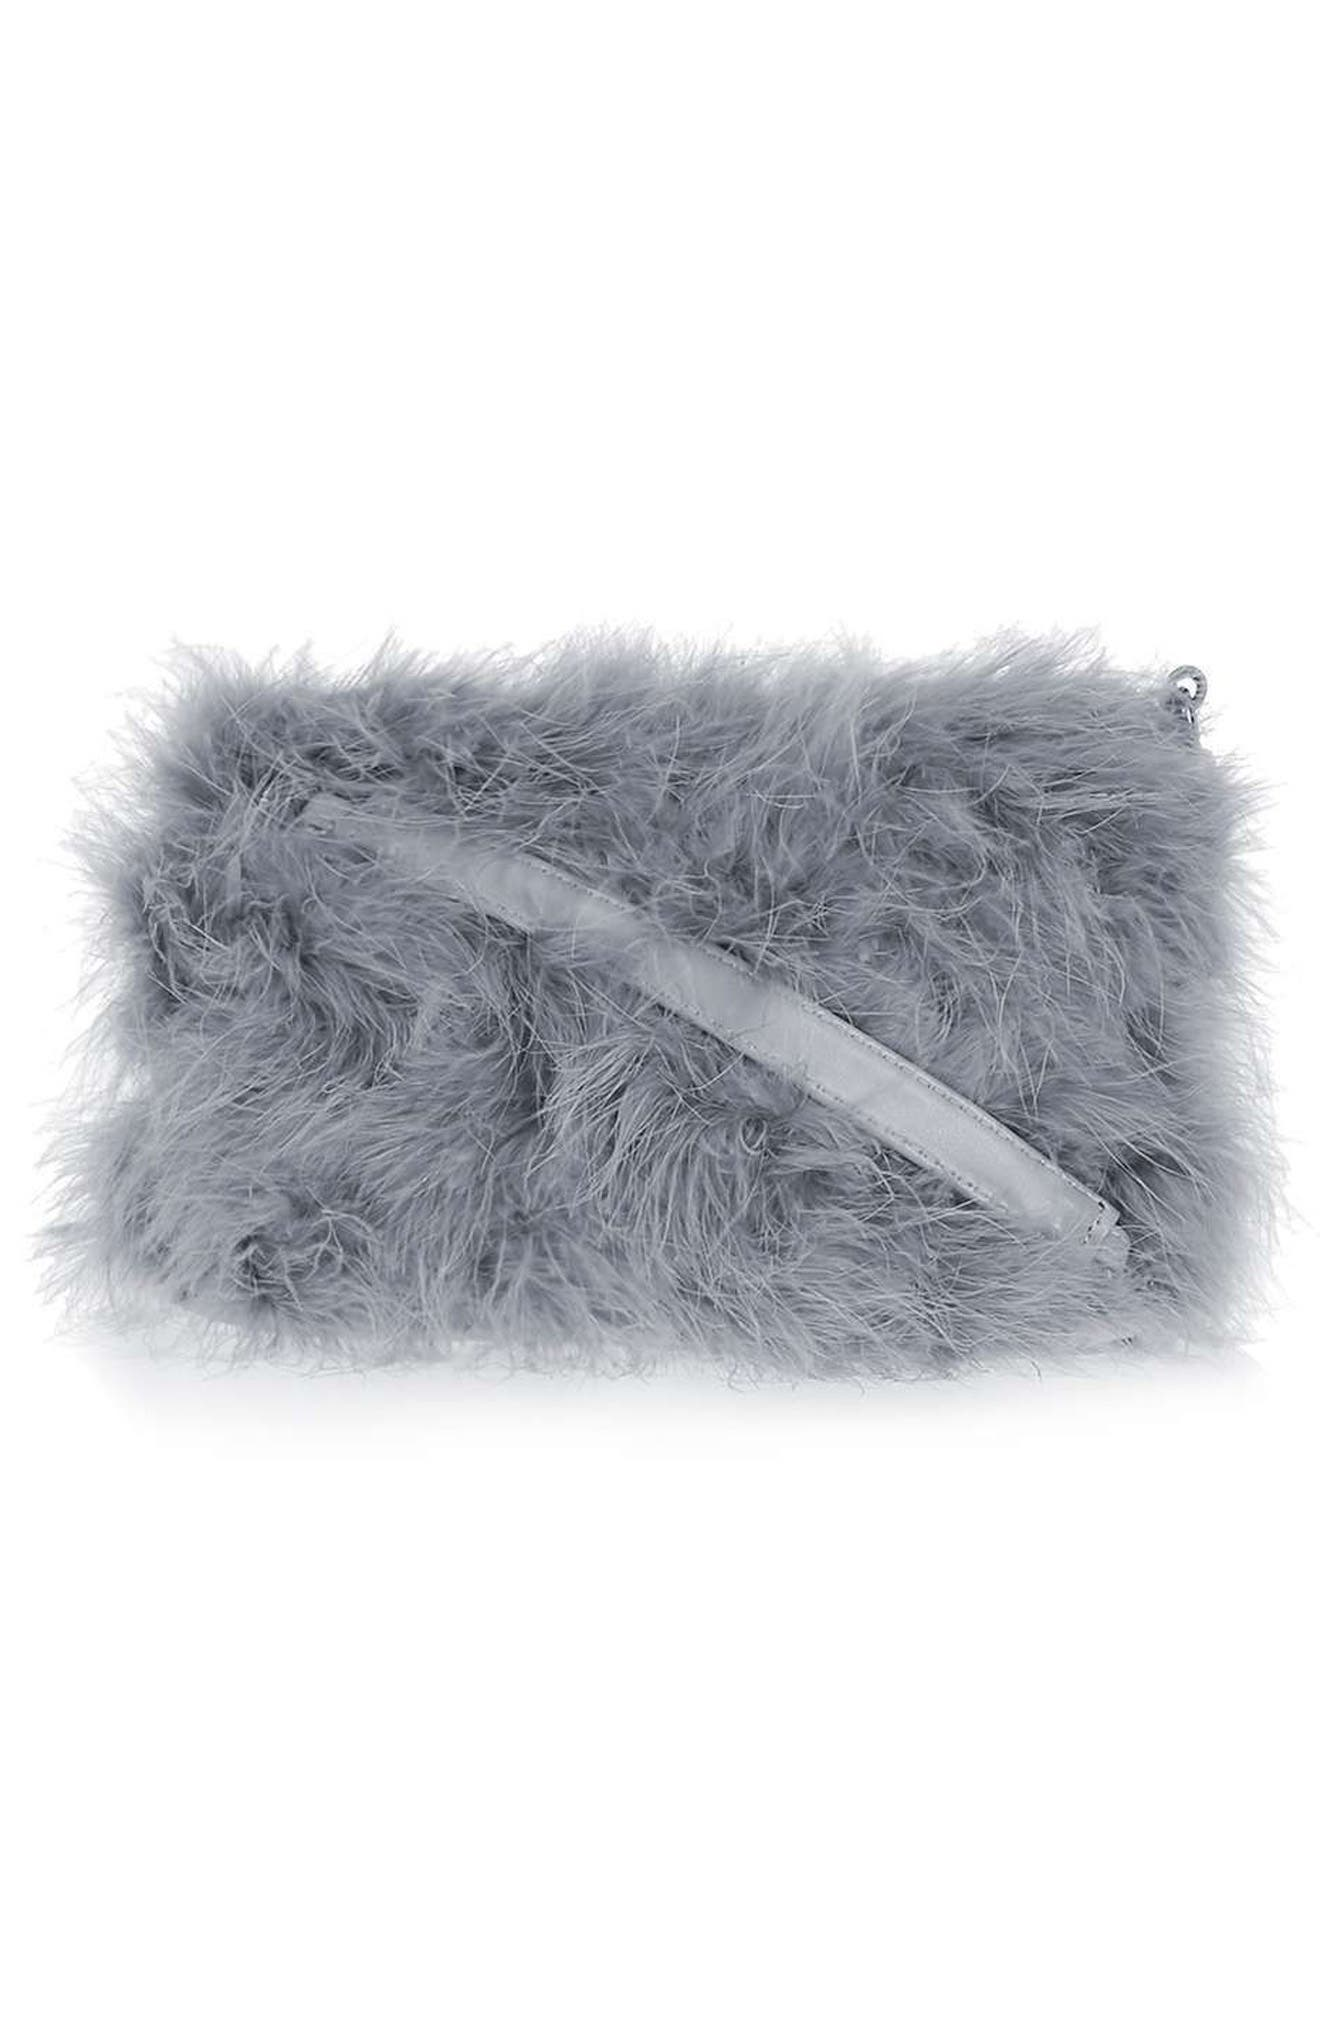 Faye Marabou Feather Bag,                             Alternate thumbnail 3, color,                             020